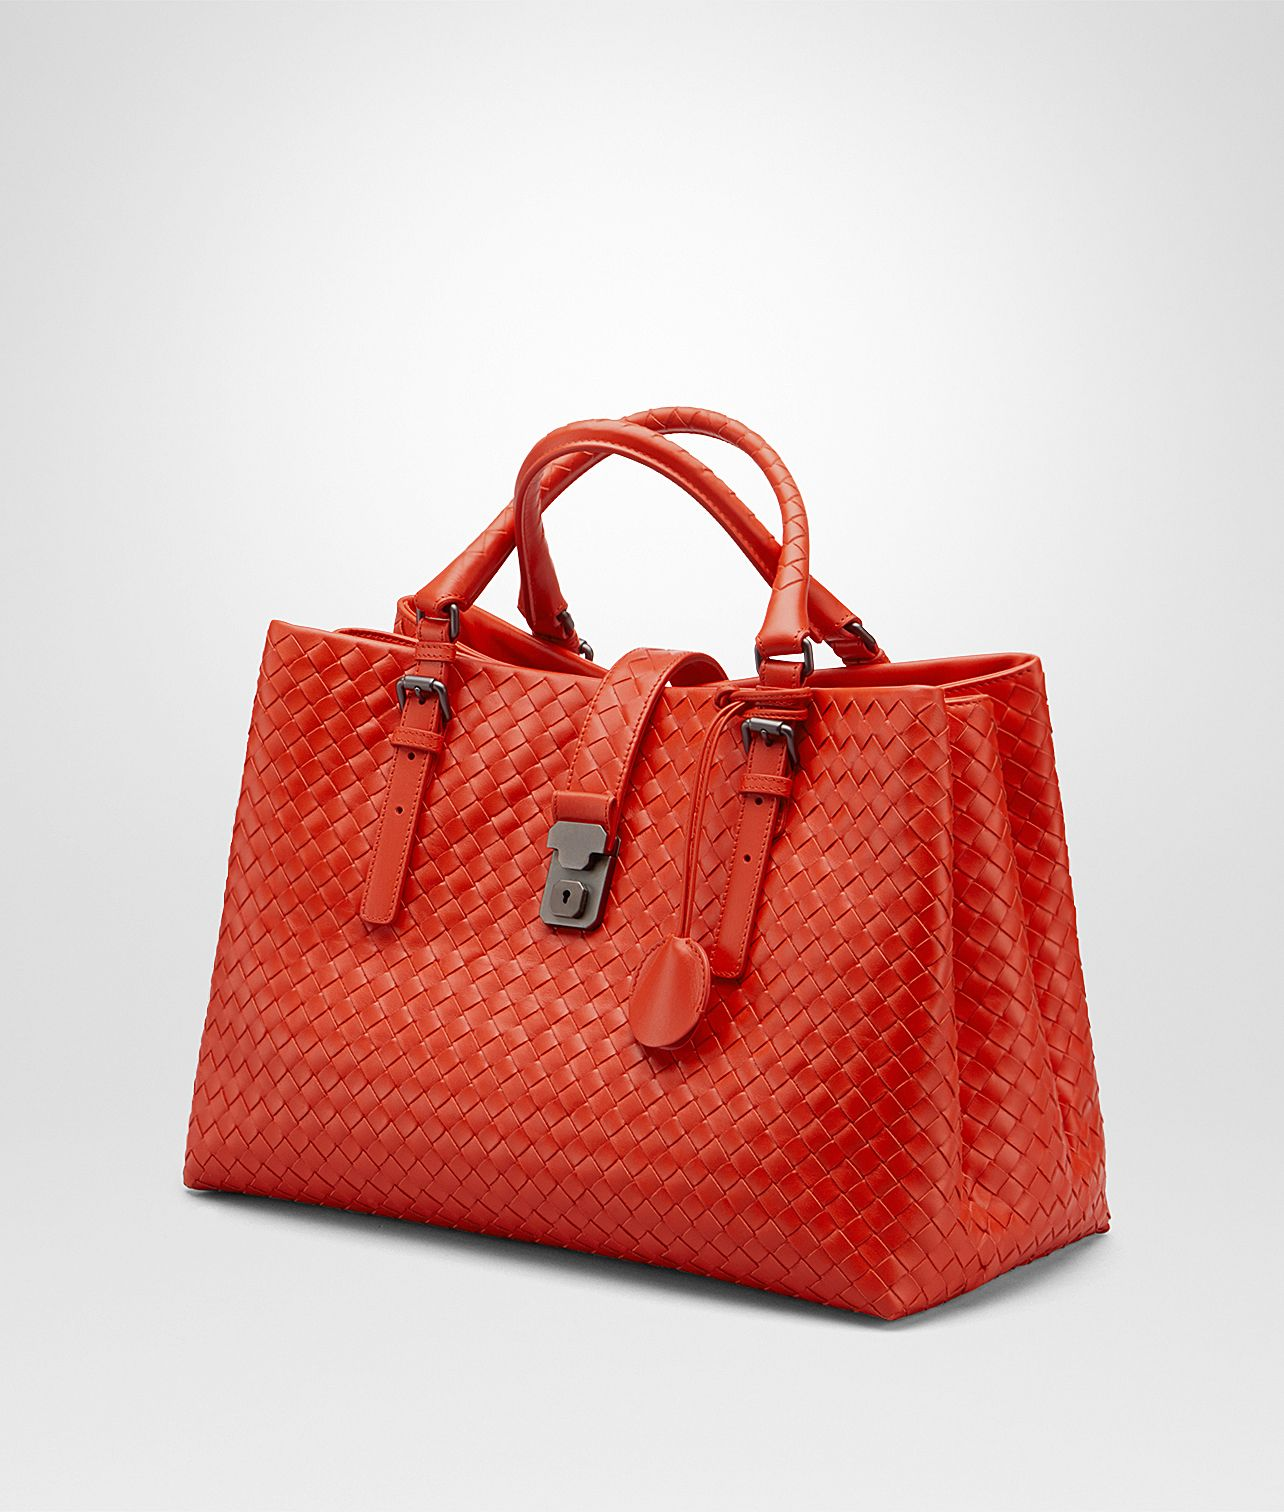 Bottega Veneta® - MEDIUM ROMA BAG IN STEEL INTRECCIATO CALF  6ee25d3edaff9